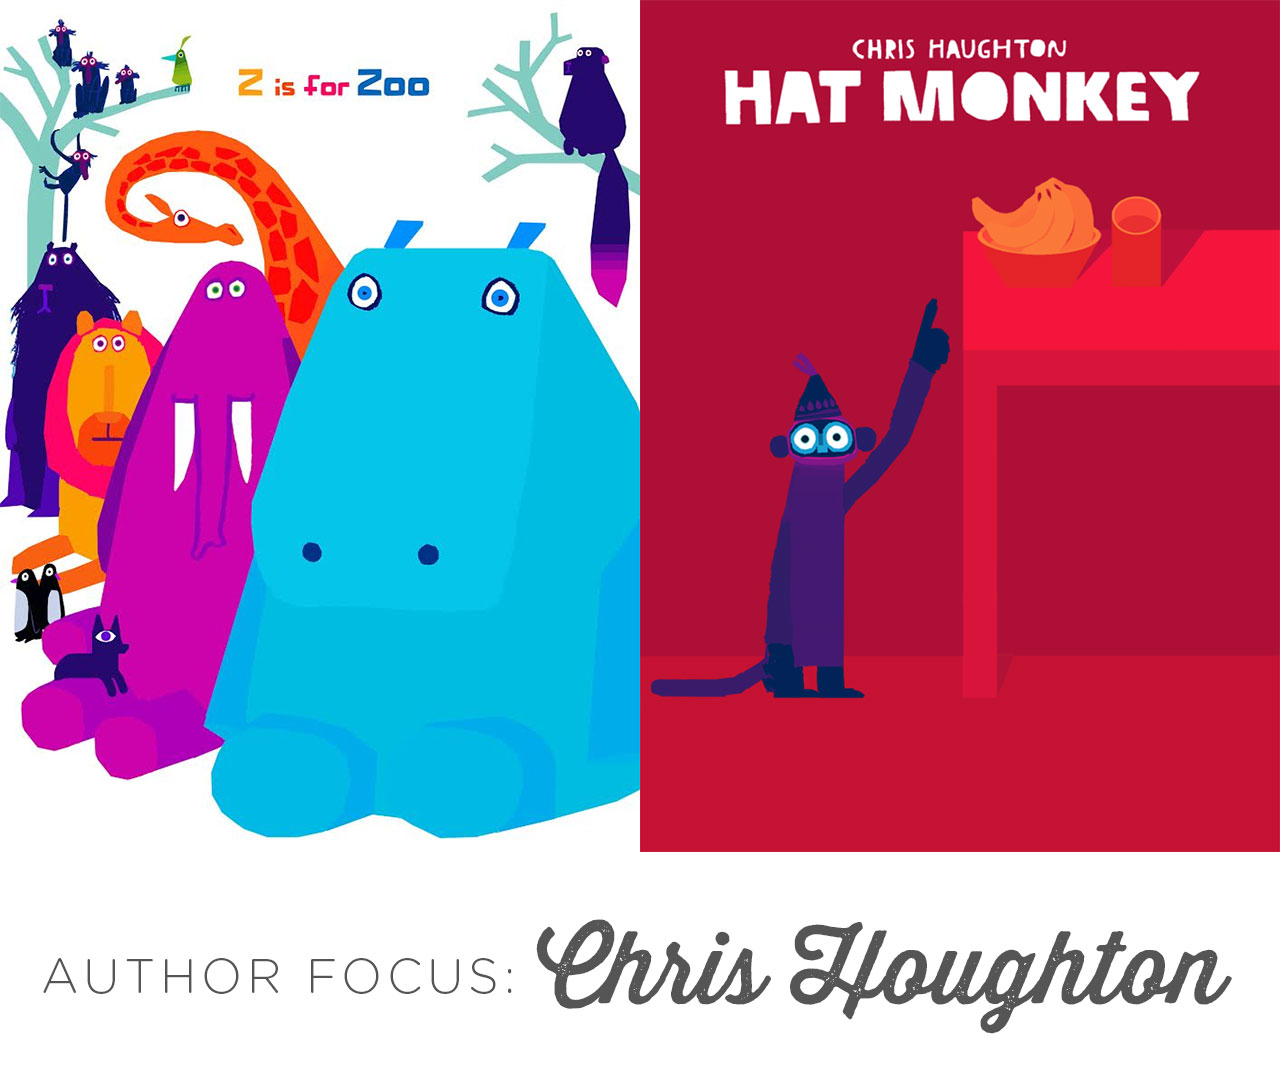 Author Focus: Chris Houghton